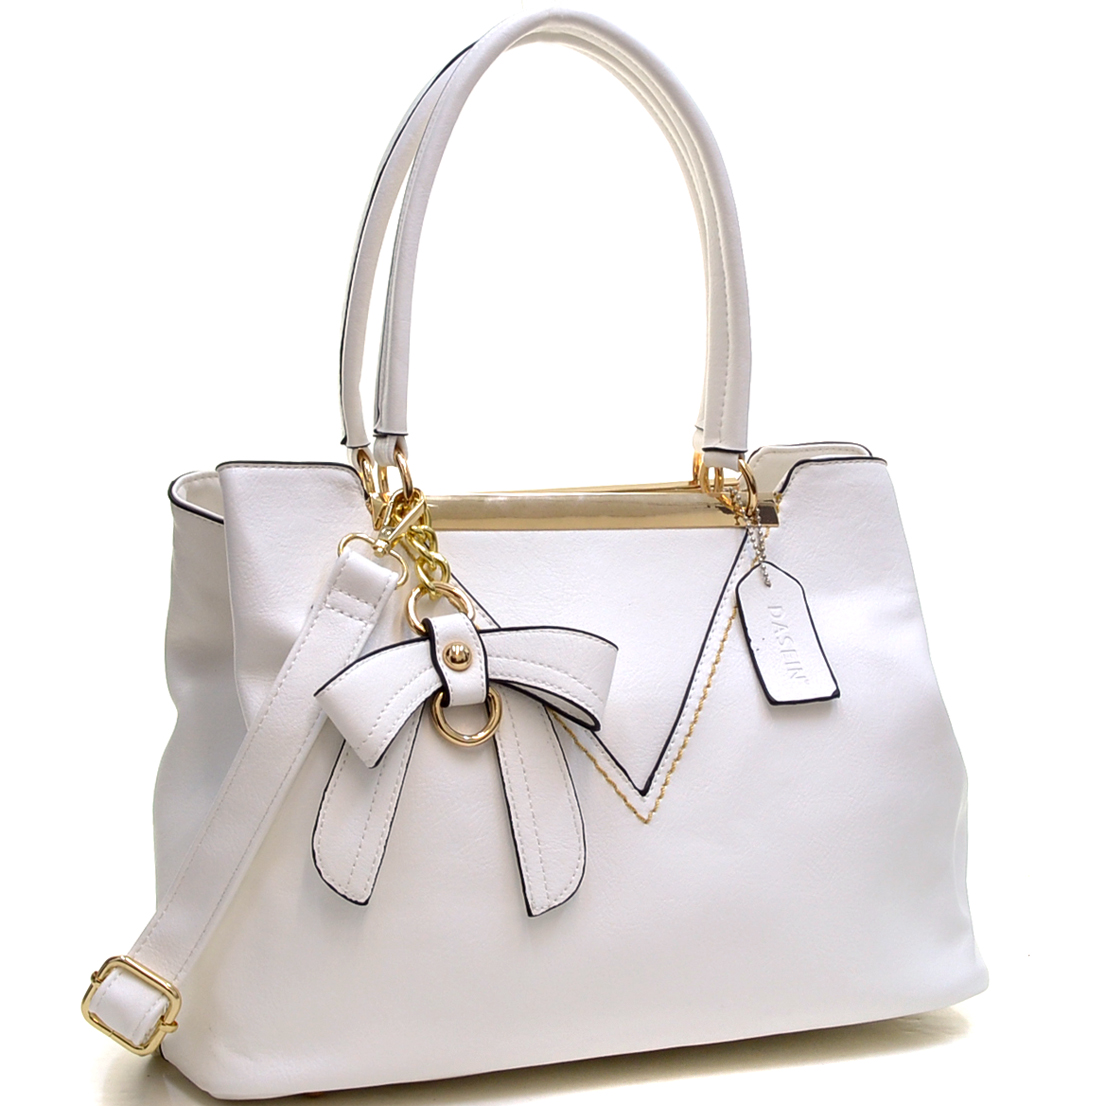 Gold-Tone Bow Accent Shoulder Bag with Shoulder Strap